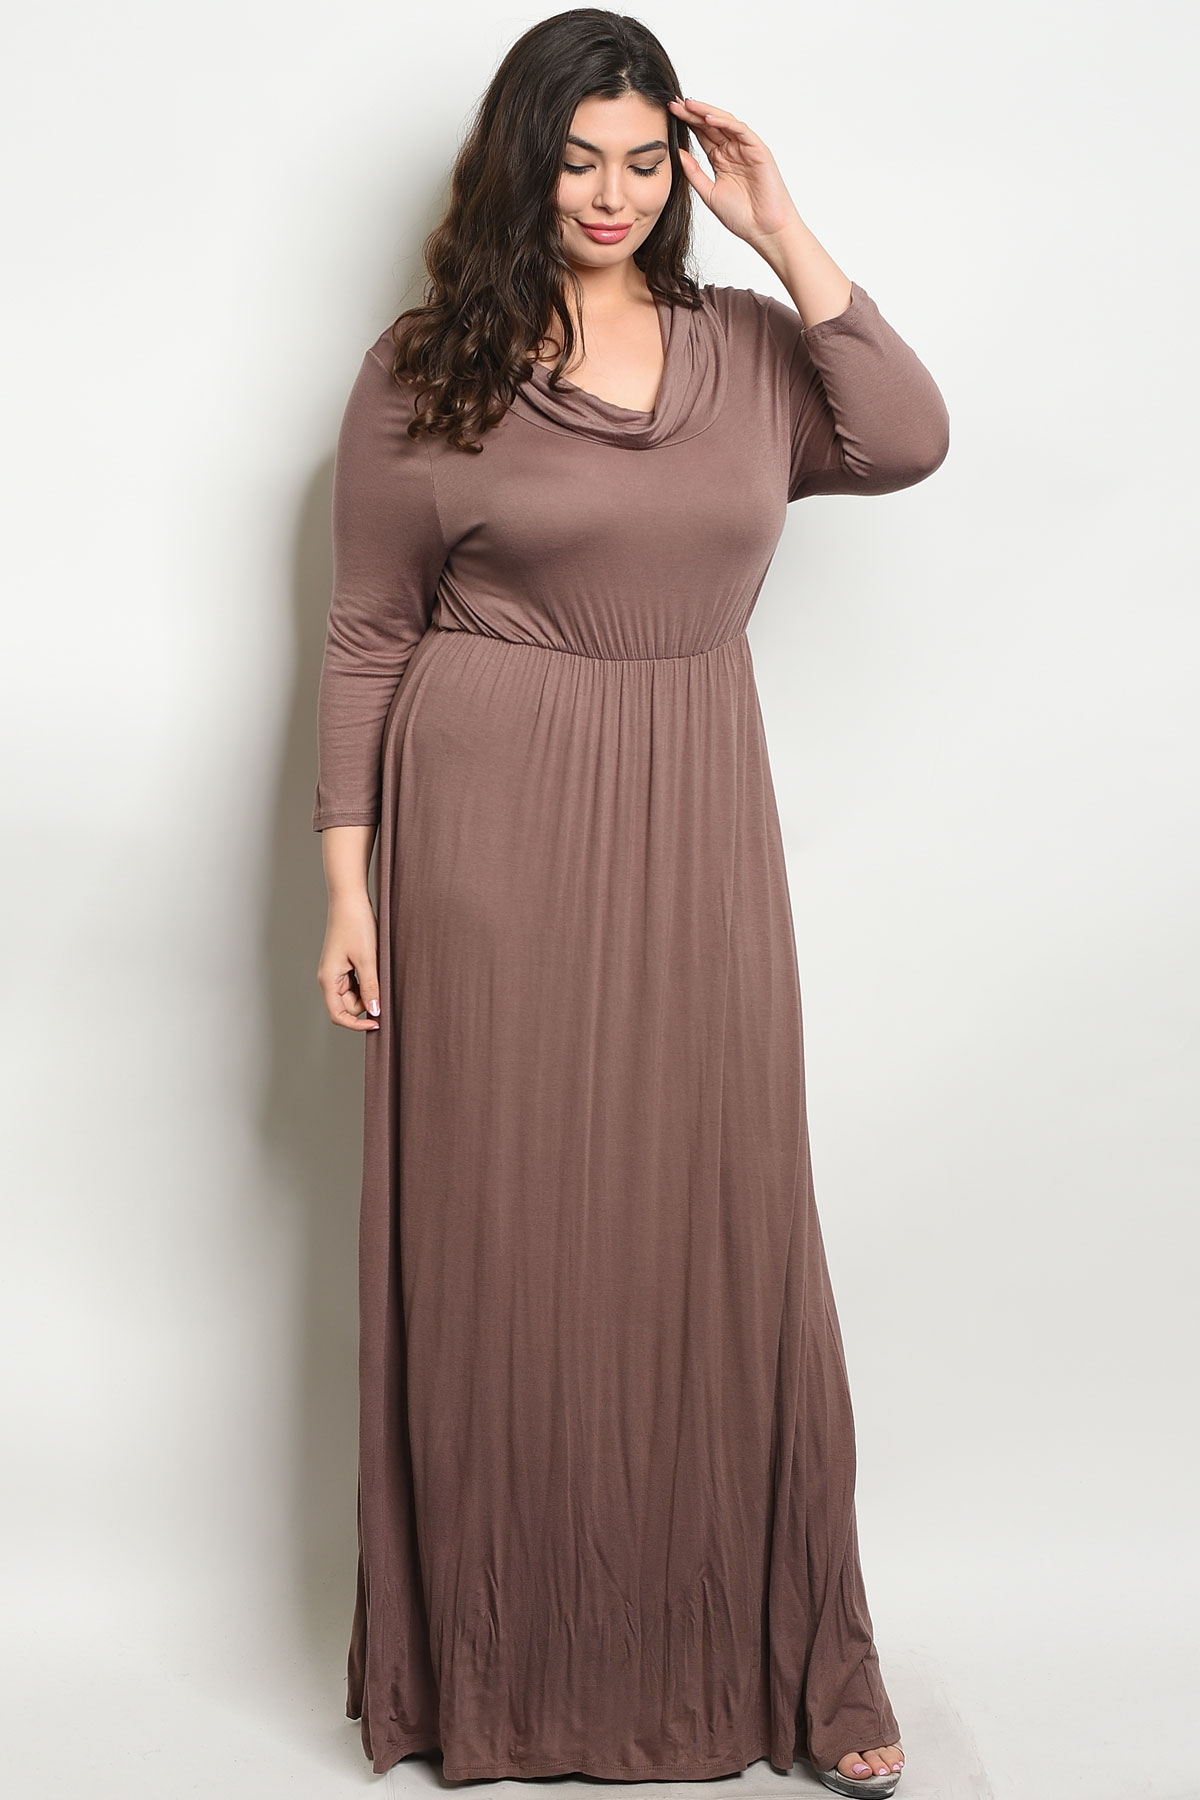 786db0e859 C43-A-4-D722X MOCHA PLUS SIZE DRESS 2-2-2